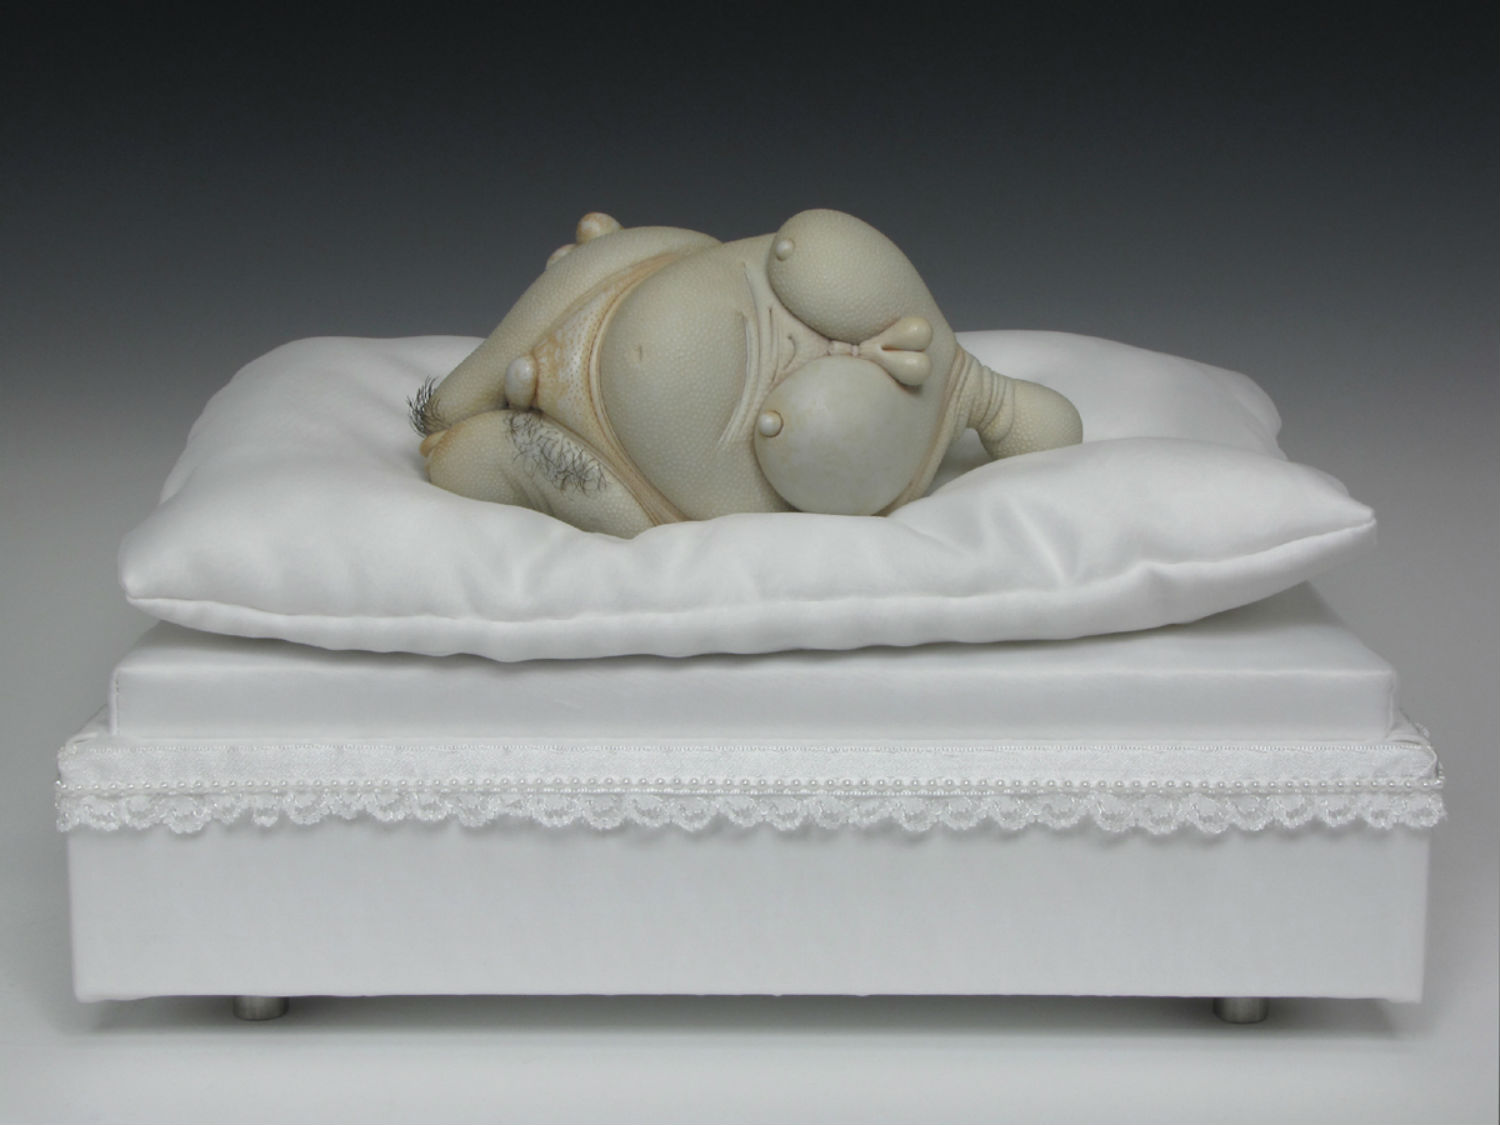 jason briggs sculpture grotesque nude erotic bed